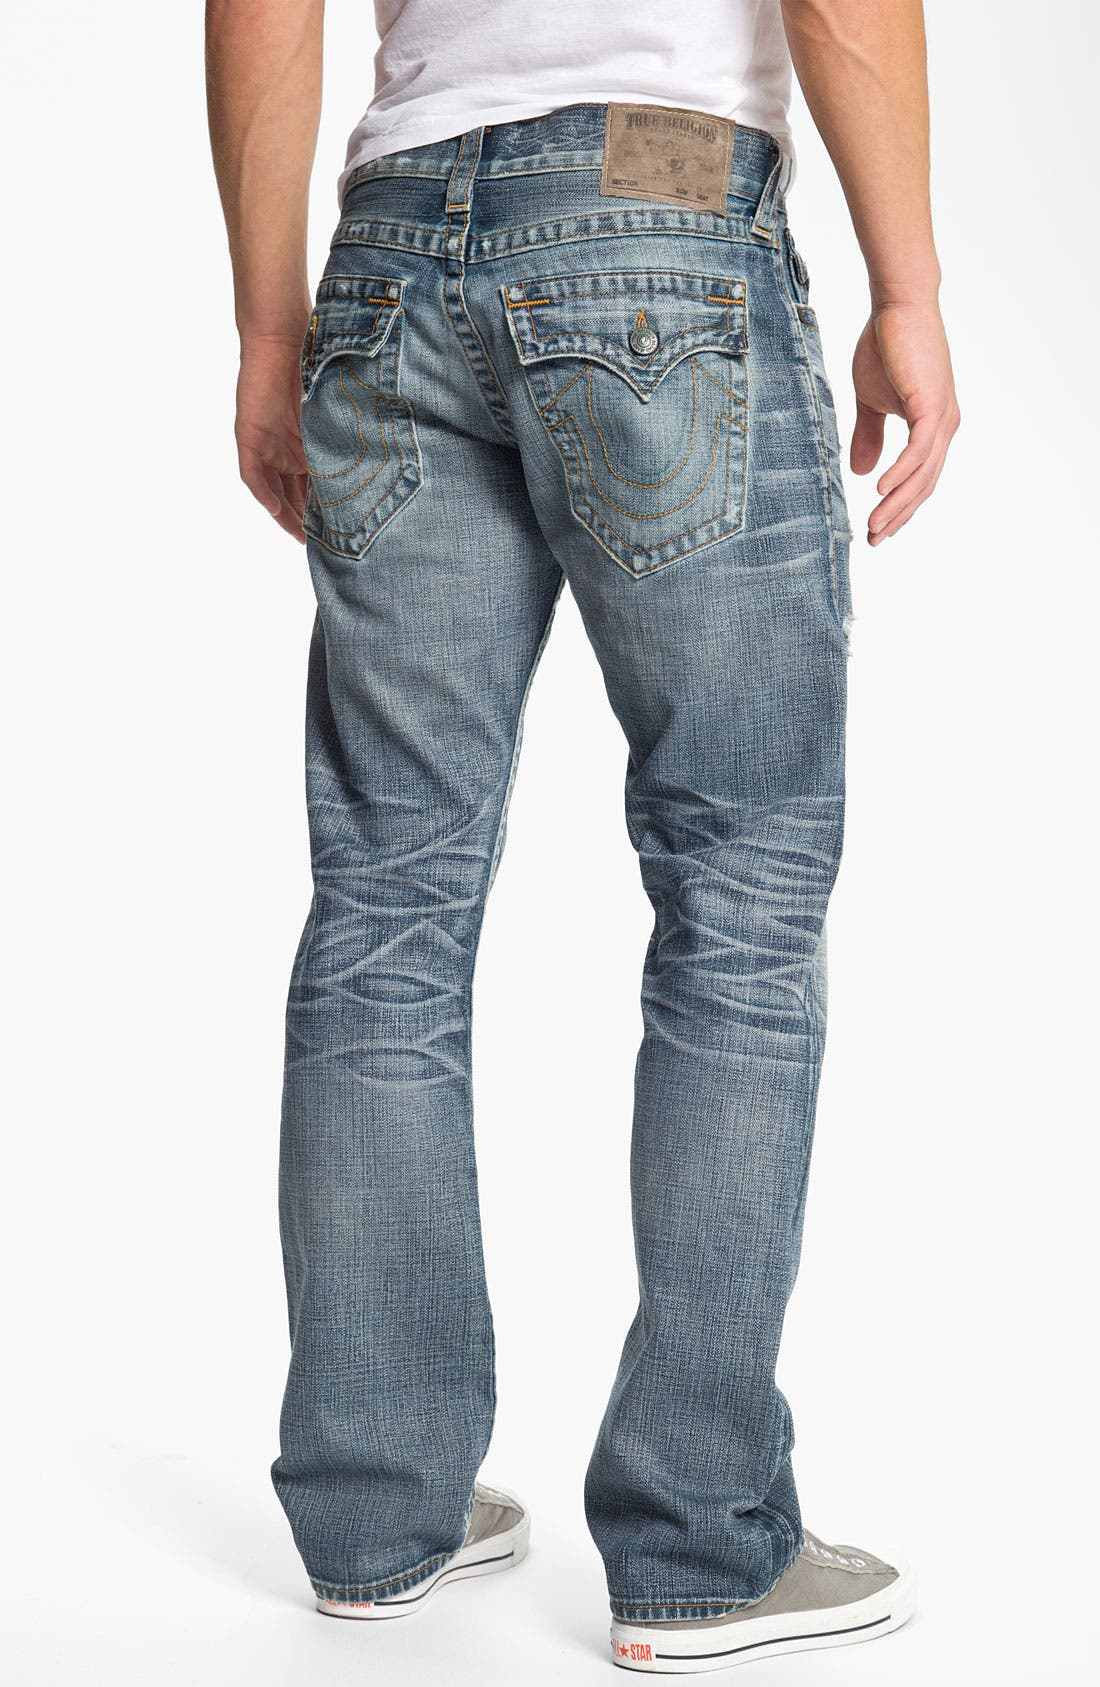 Alternate Image 1 Selected - True Religion Brand Jeans 'Ricky Vintage' Straight Leg Jeans (Tyrant)